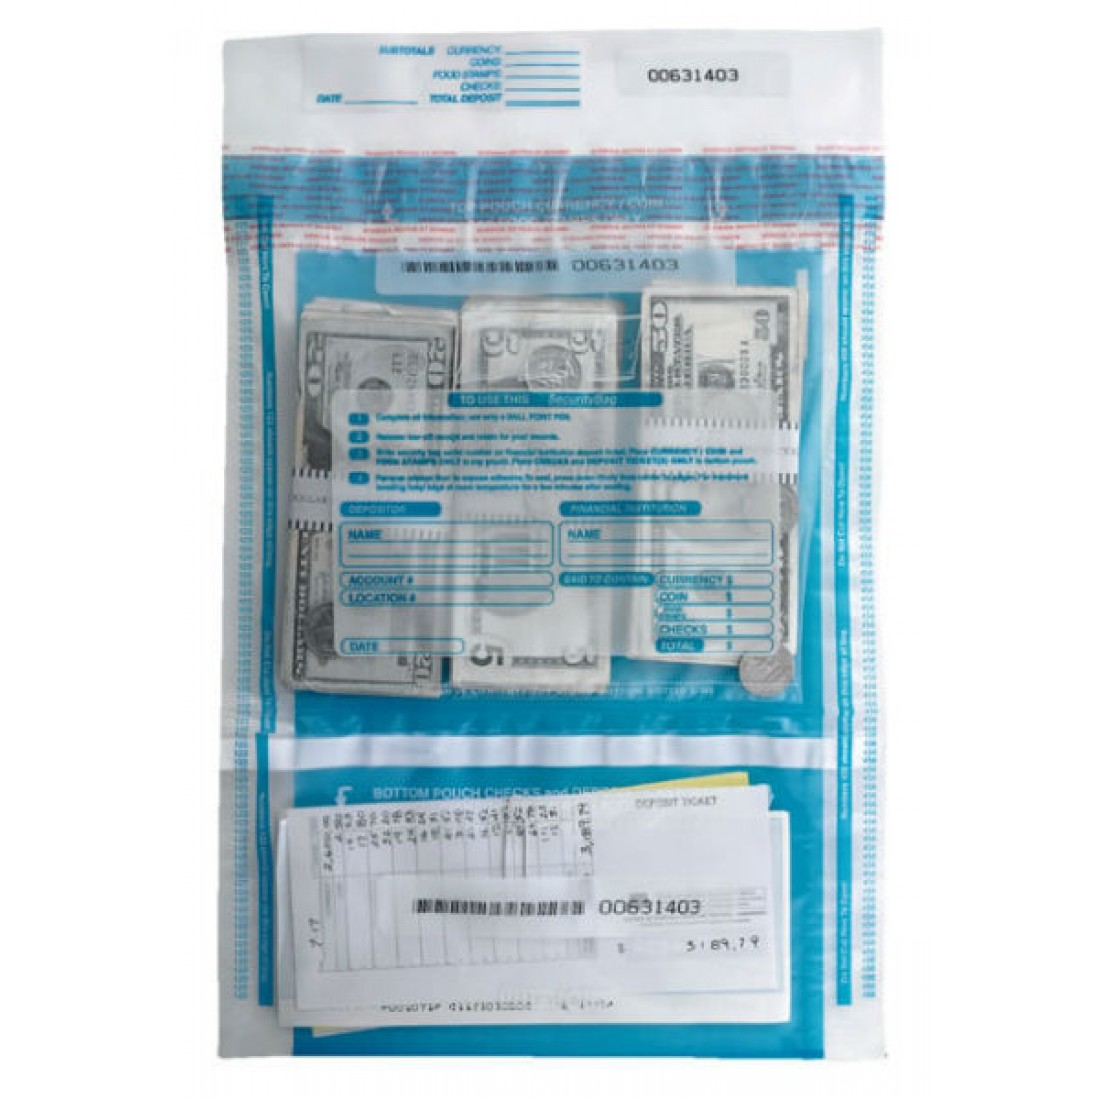 Checks & Cash Deposit Bags - 10 x 15 3/4 (53858) - Deposit Slips  - Business Checks